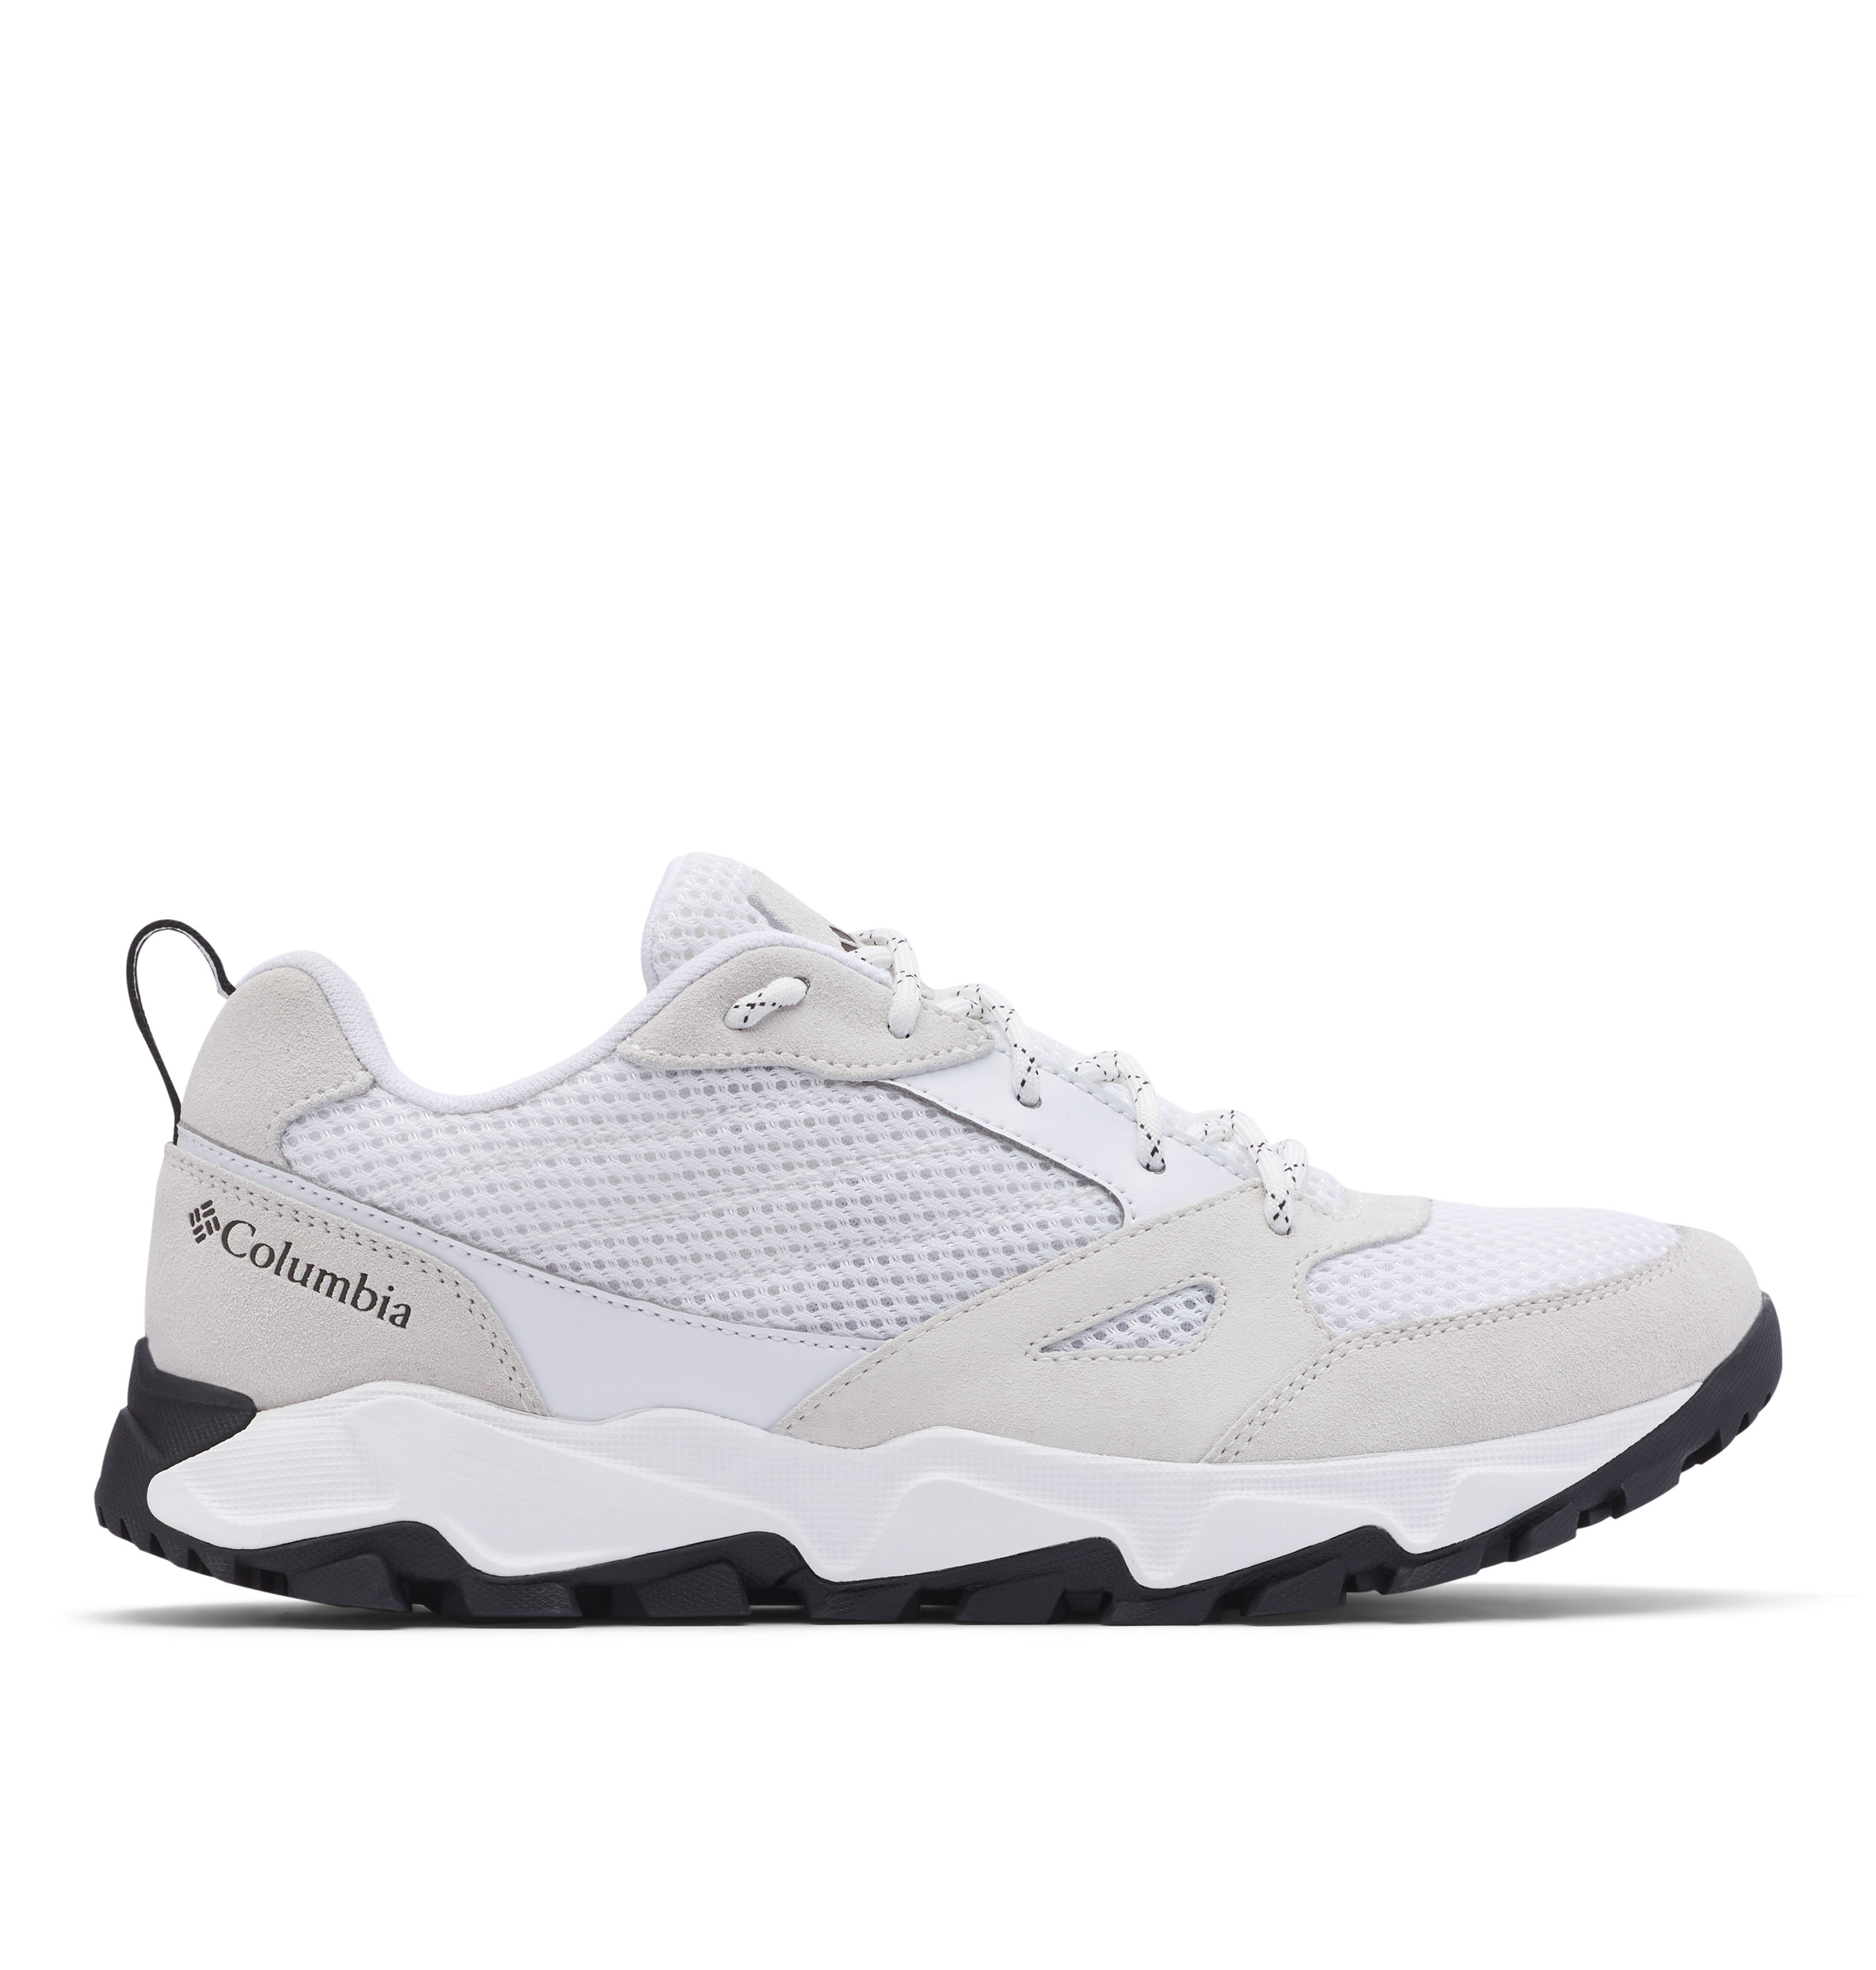 Comprar Columbia Zapatillas Ivo Trail Breeze blanco / Techlite / Omni-Grip /